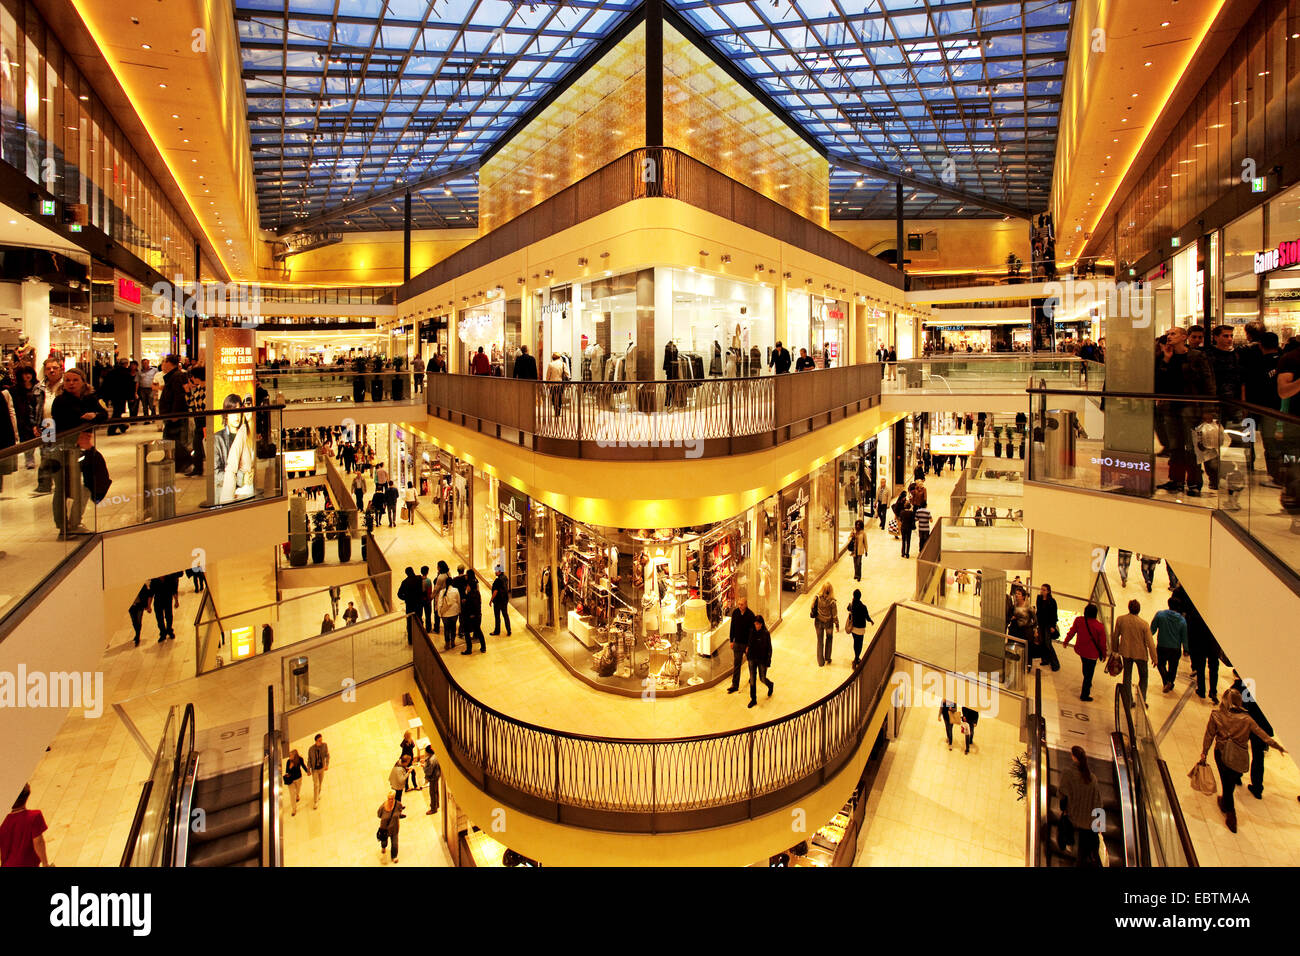 Dortmund Shopping Center Interior View Of Shopping Centre Thier Galerie Germany